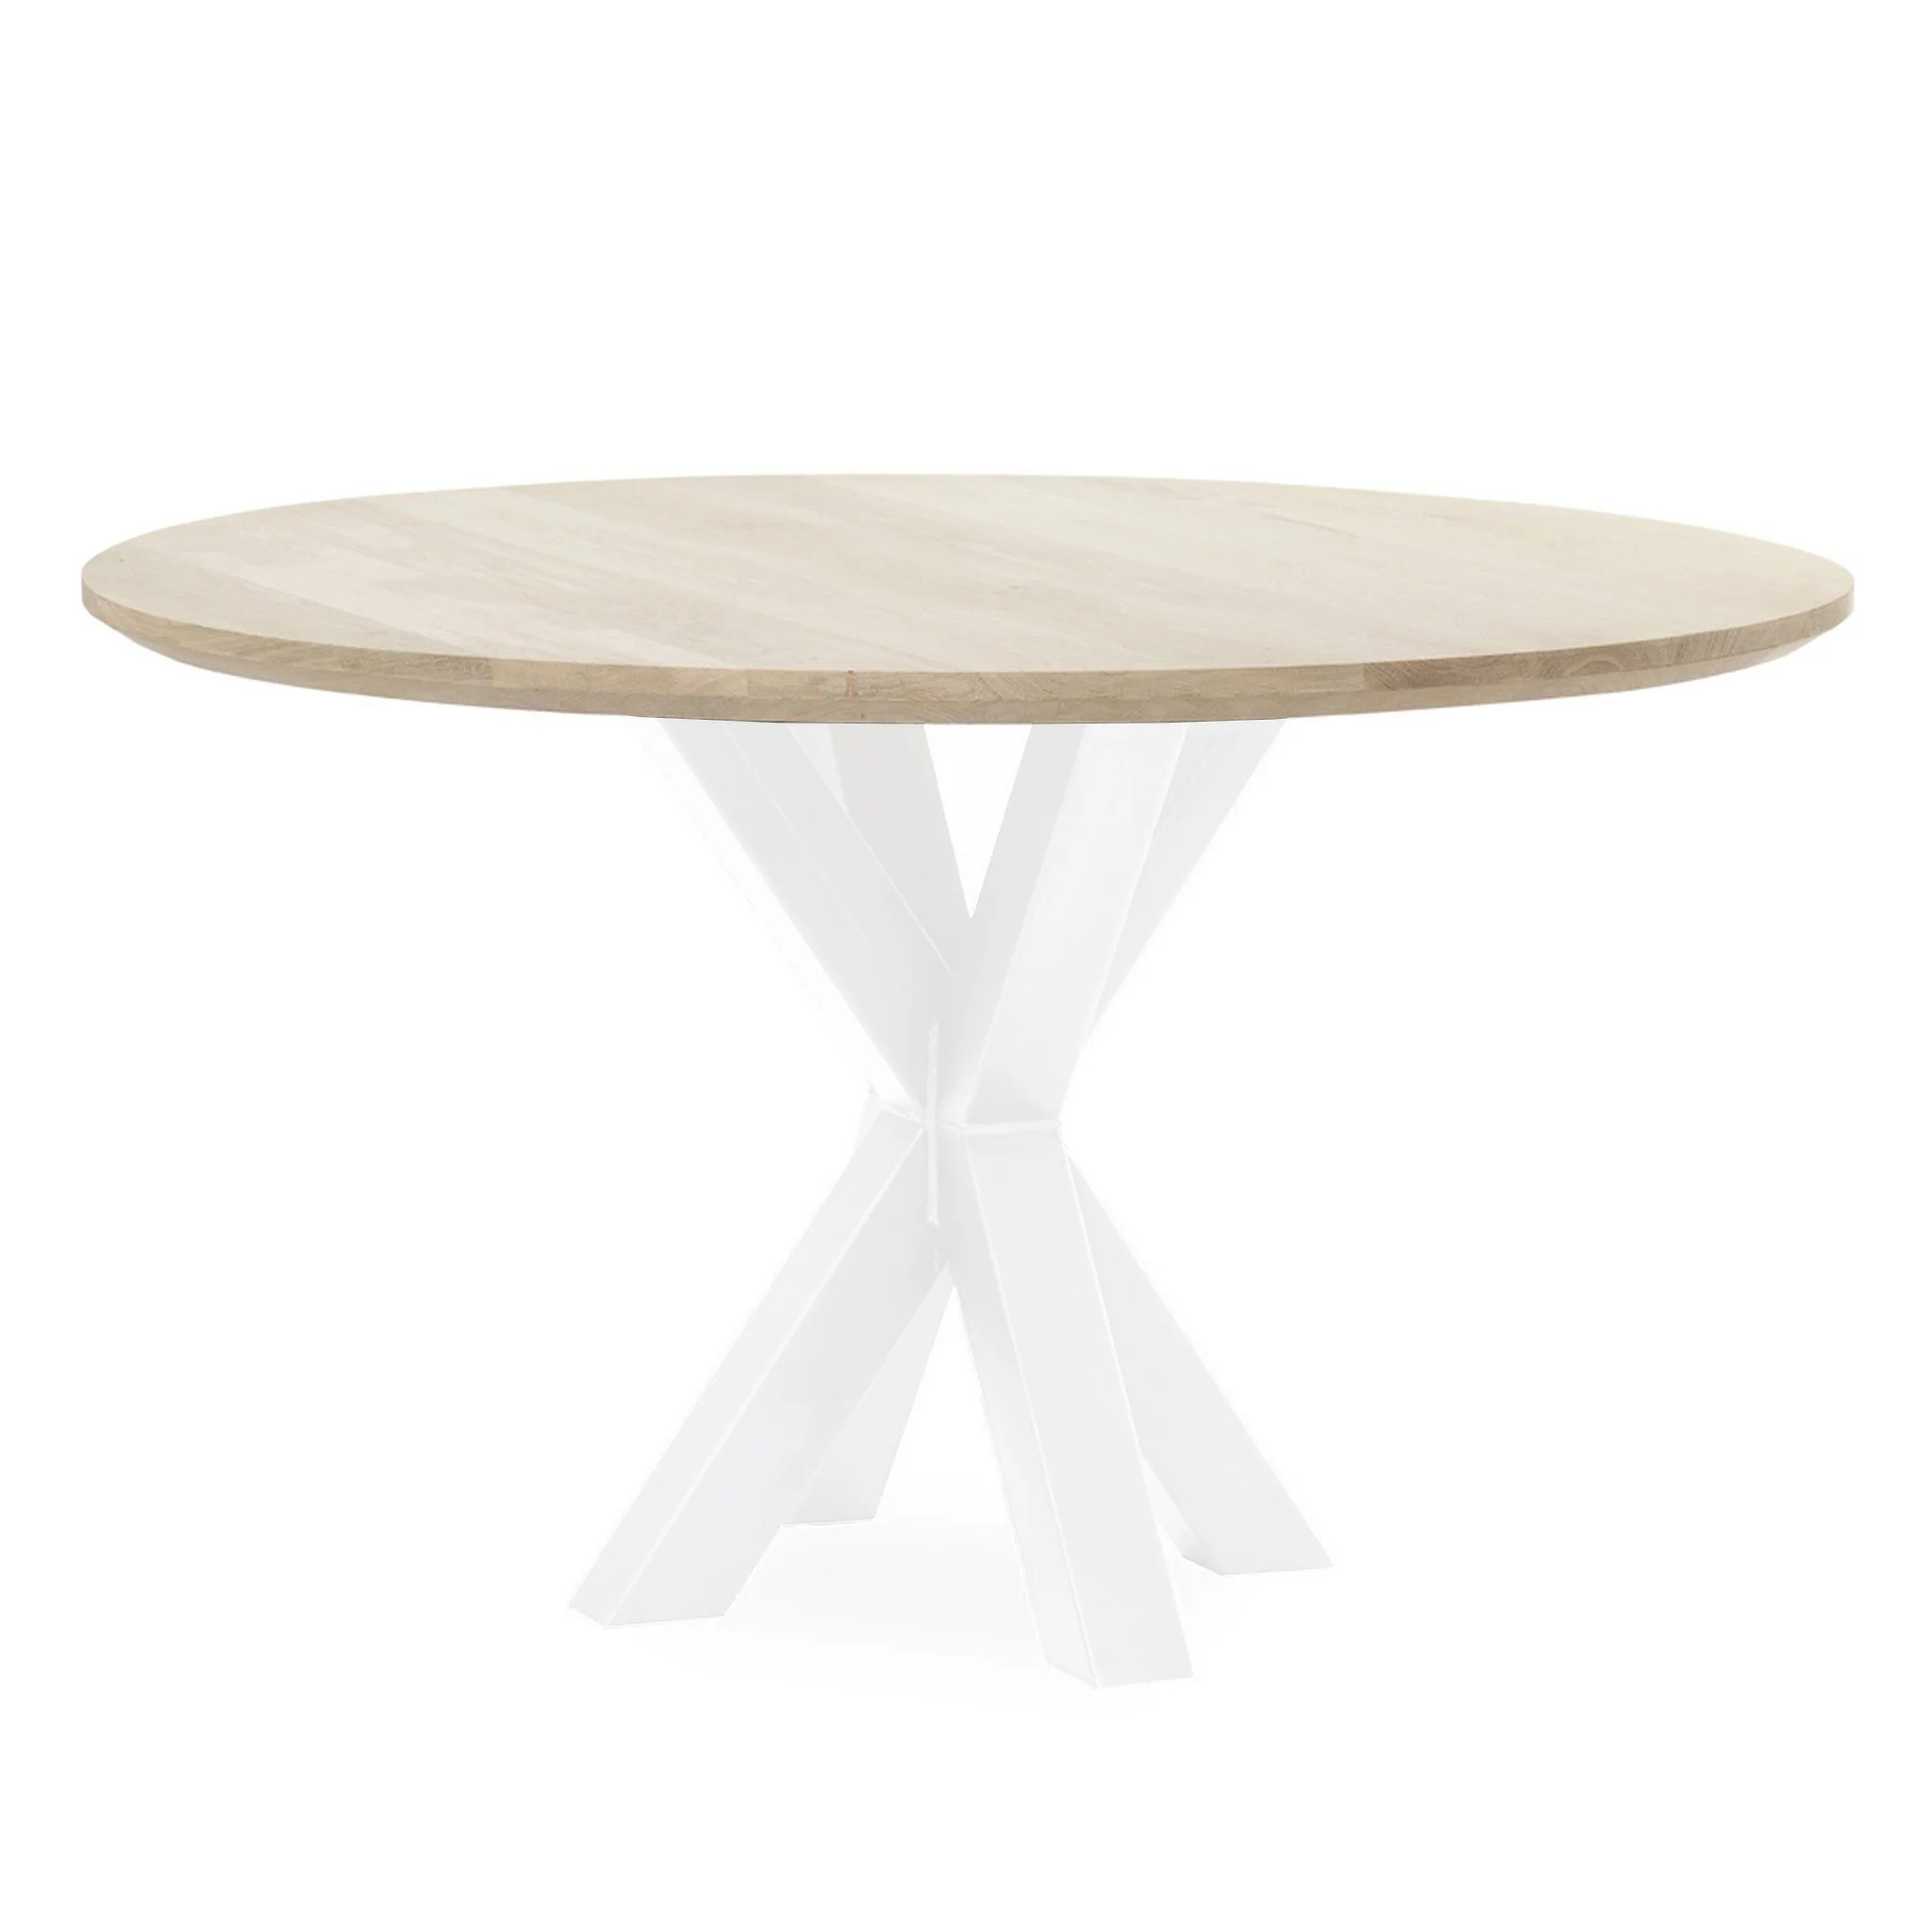 Ronde Eettafel Wit Tafel Superstar Eiken Spinpoot Rond Wit